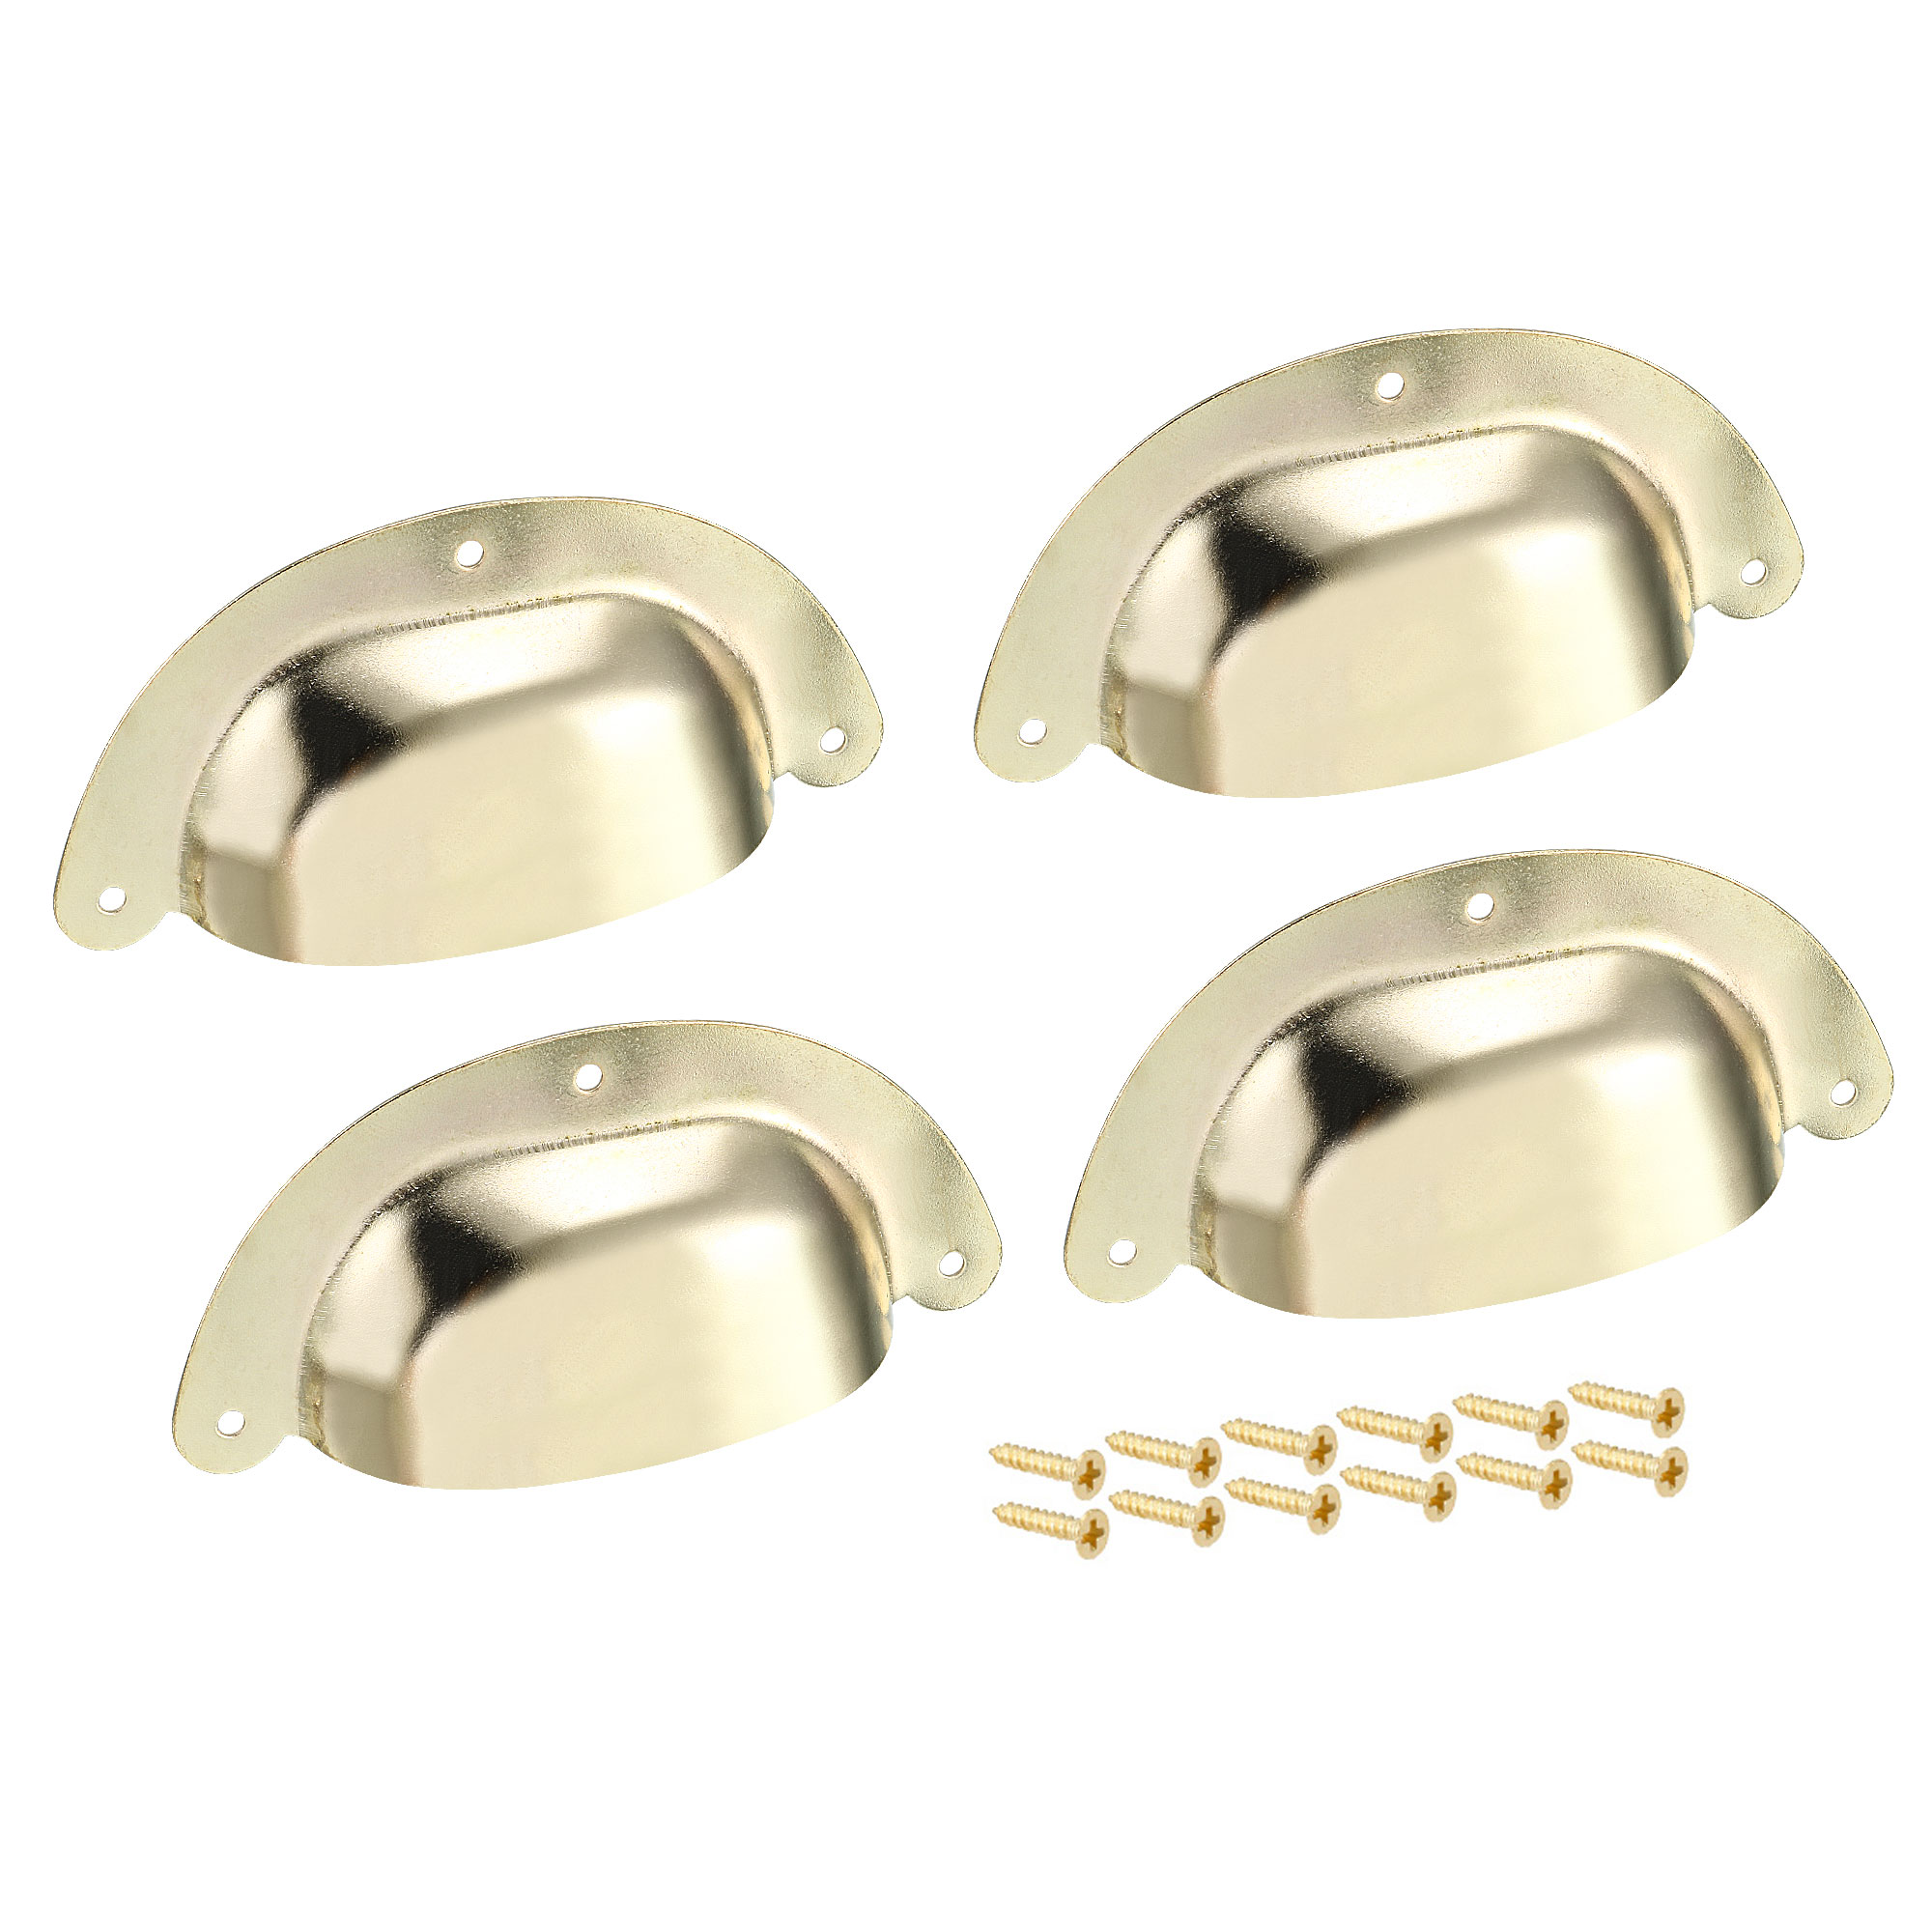 Cup Drawer Pull Kitchen Cabinet Handles Gold Tone, 88mm Hole Centers, 4pcs